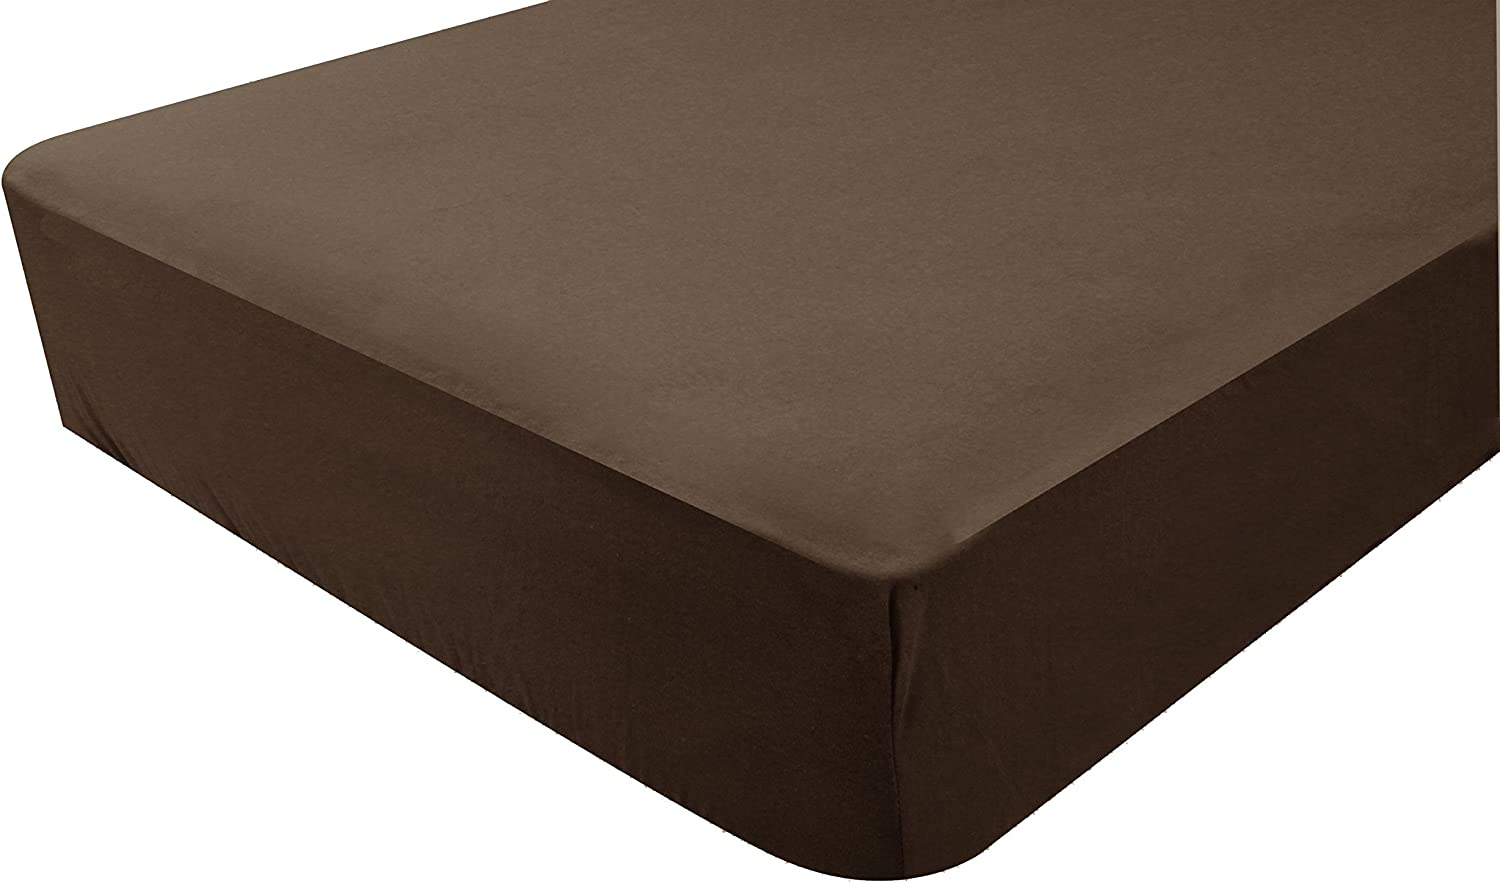 Poyetmotte Fitted Sheet One Size Chocolate 70 x 140 cm